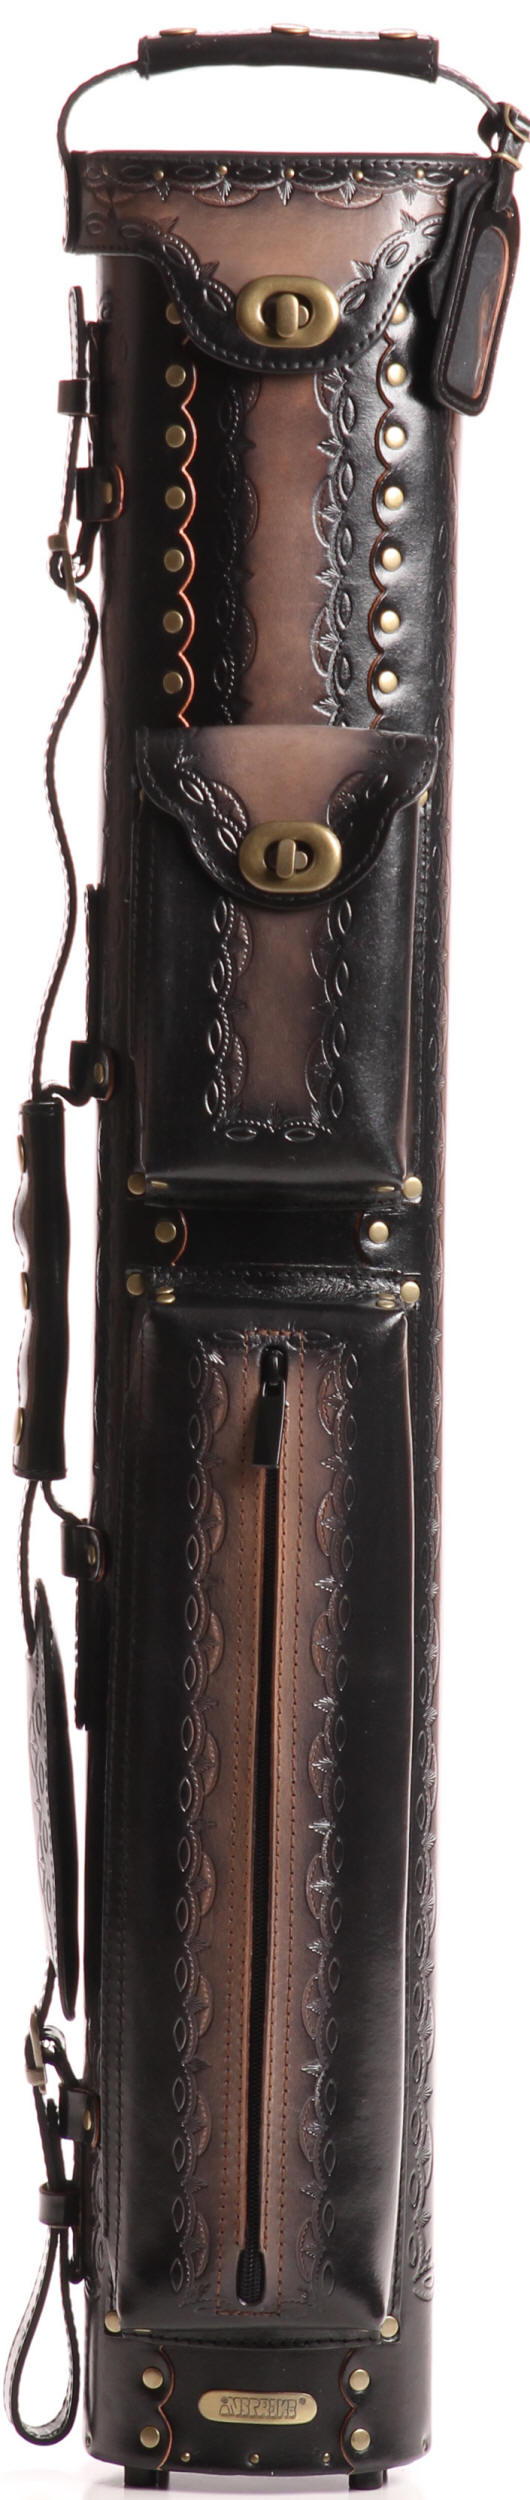 Instroke Saddle Series Leather Pool Cue Cases D01 Black